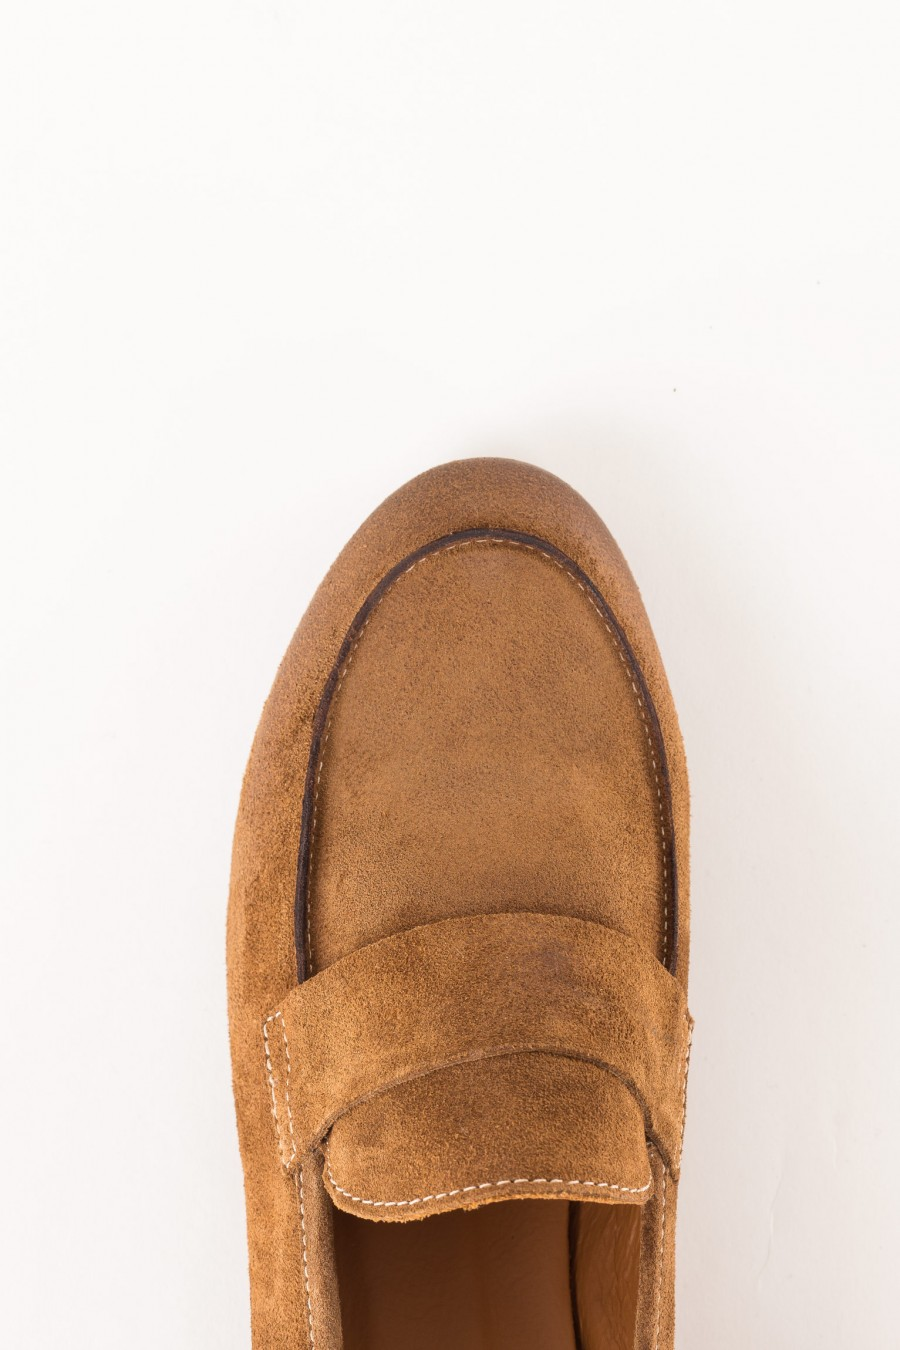 suede autumn shoe